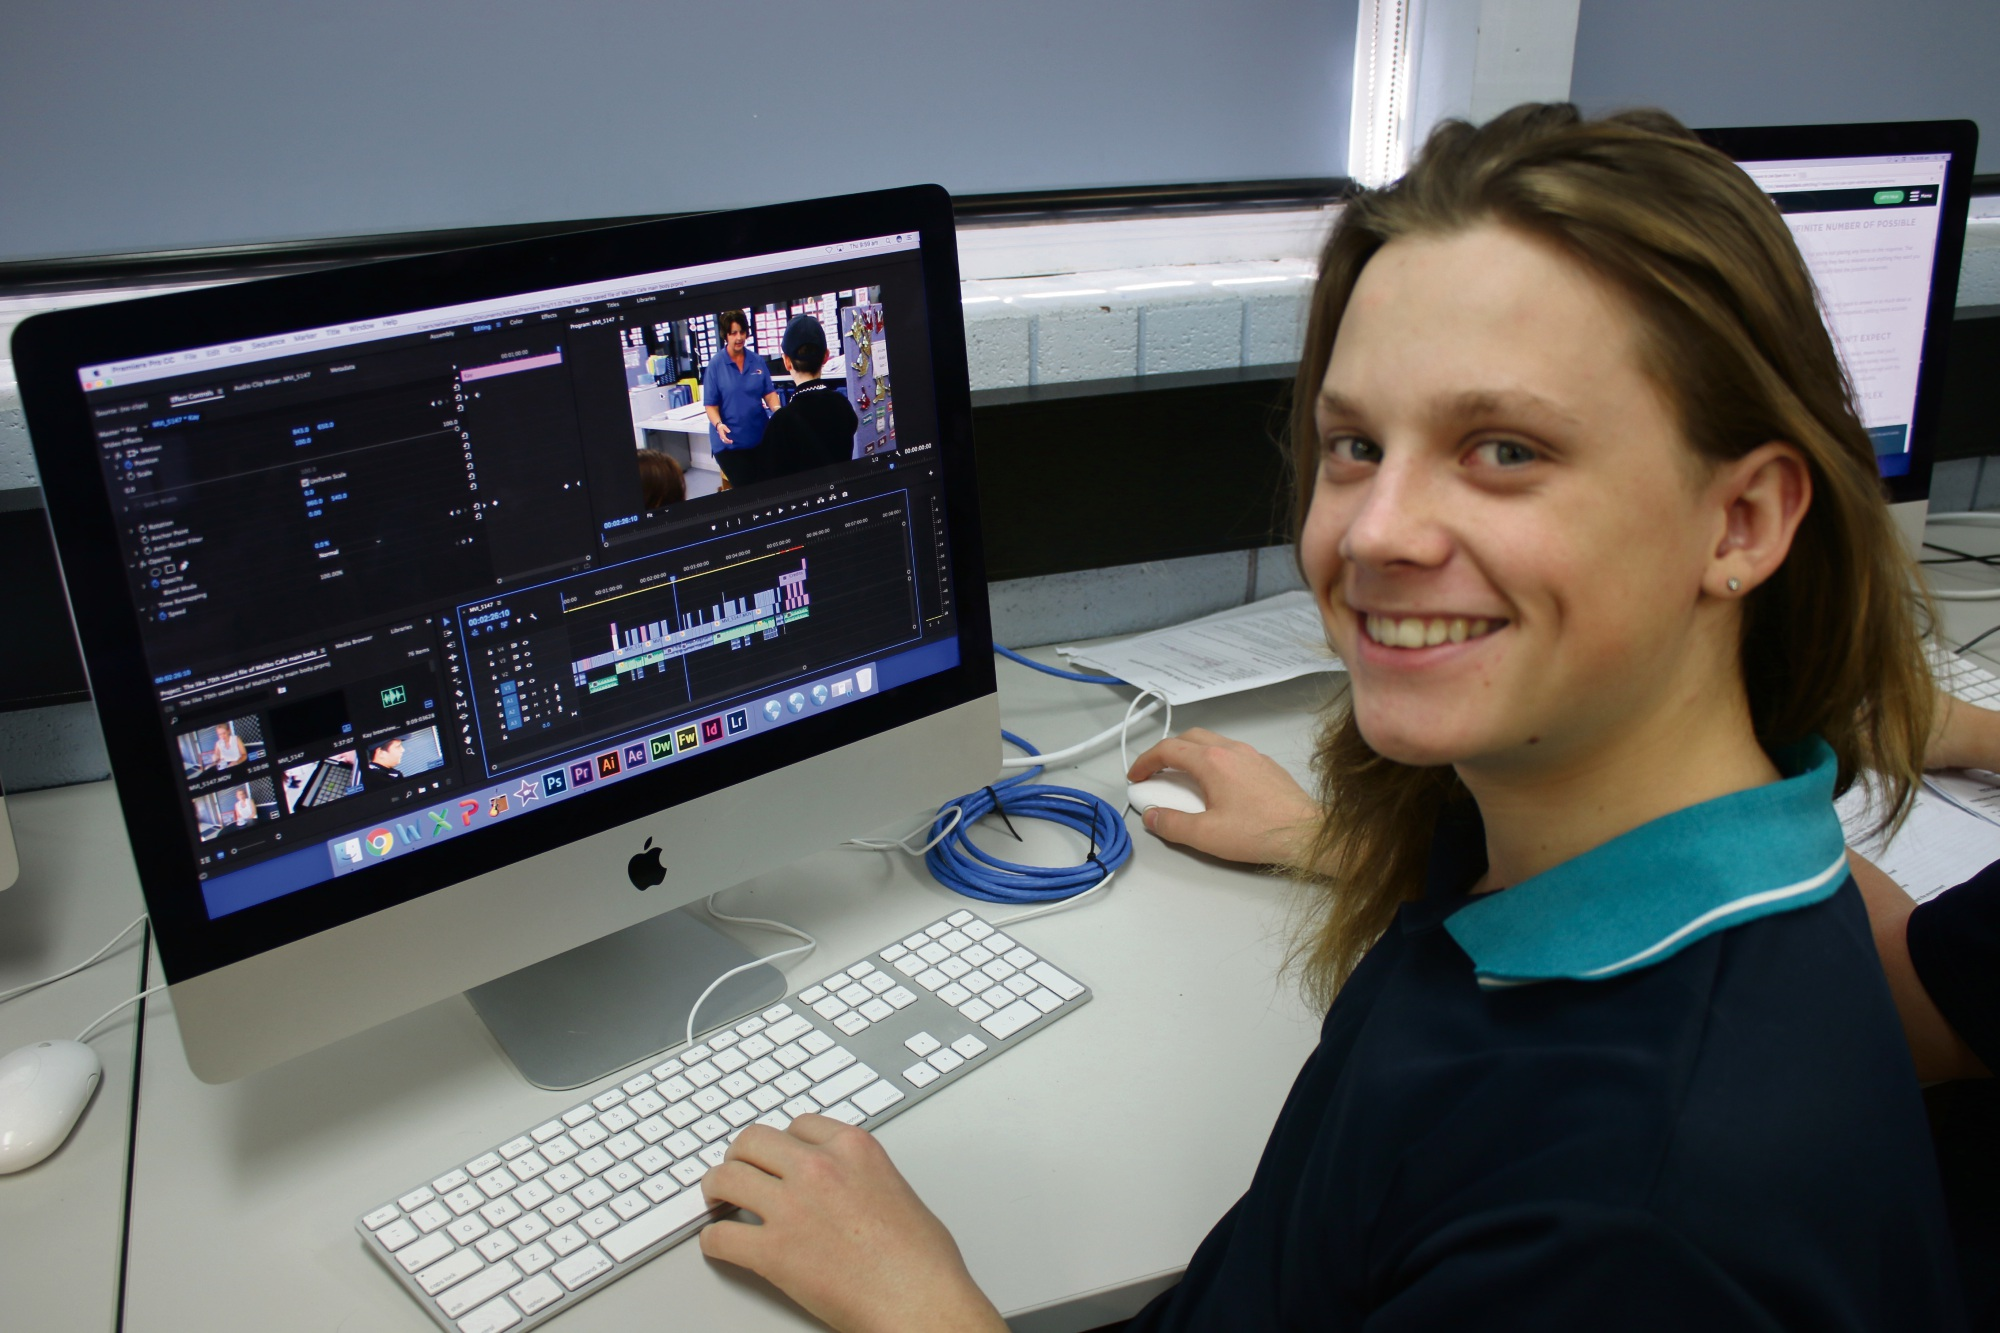 Safety Bay Senior High School student Sebastien Rusby, who directed a film shortlisted for the Focus On Ability Short Film Awards.